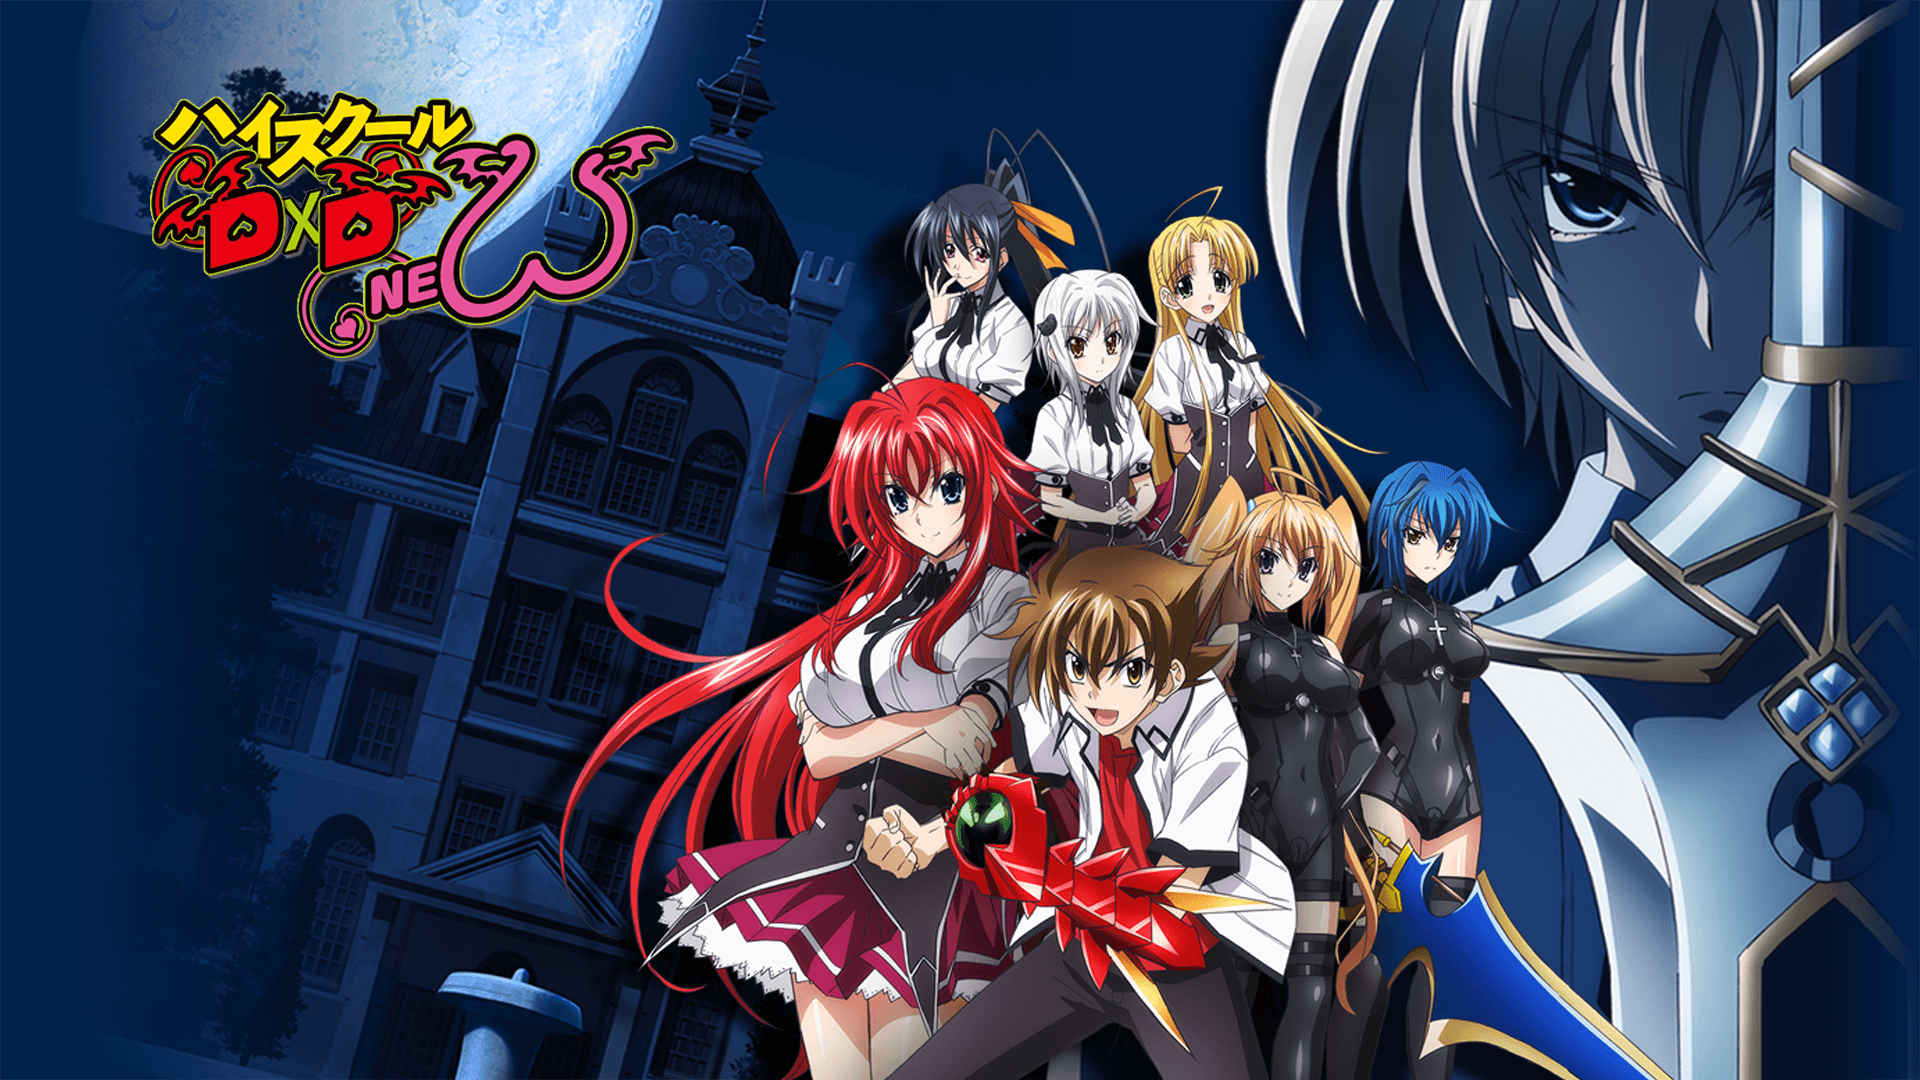 Fine HDQ Highschool Dxd Pictures (Fine 29 HD Quality Wallpapers)